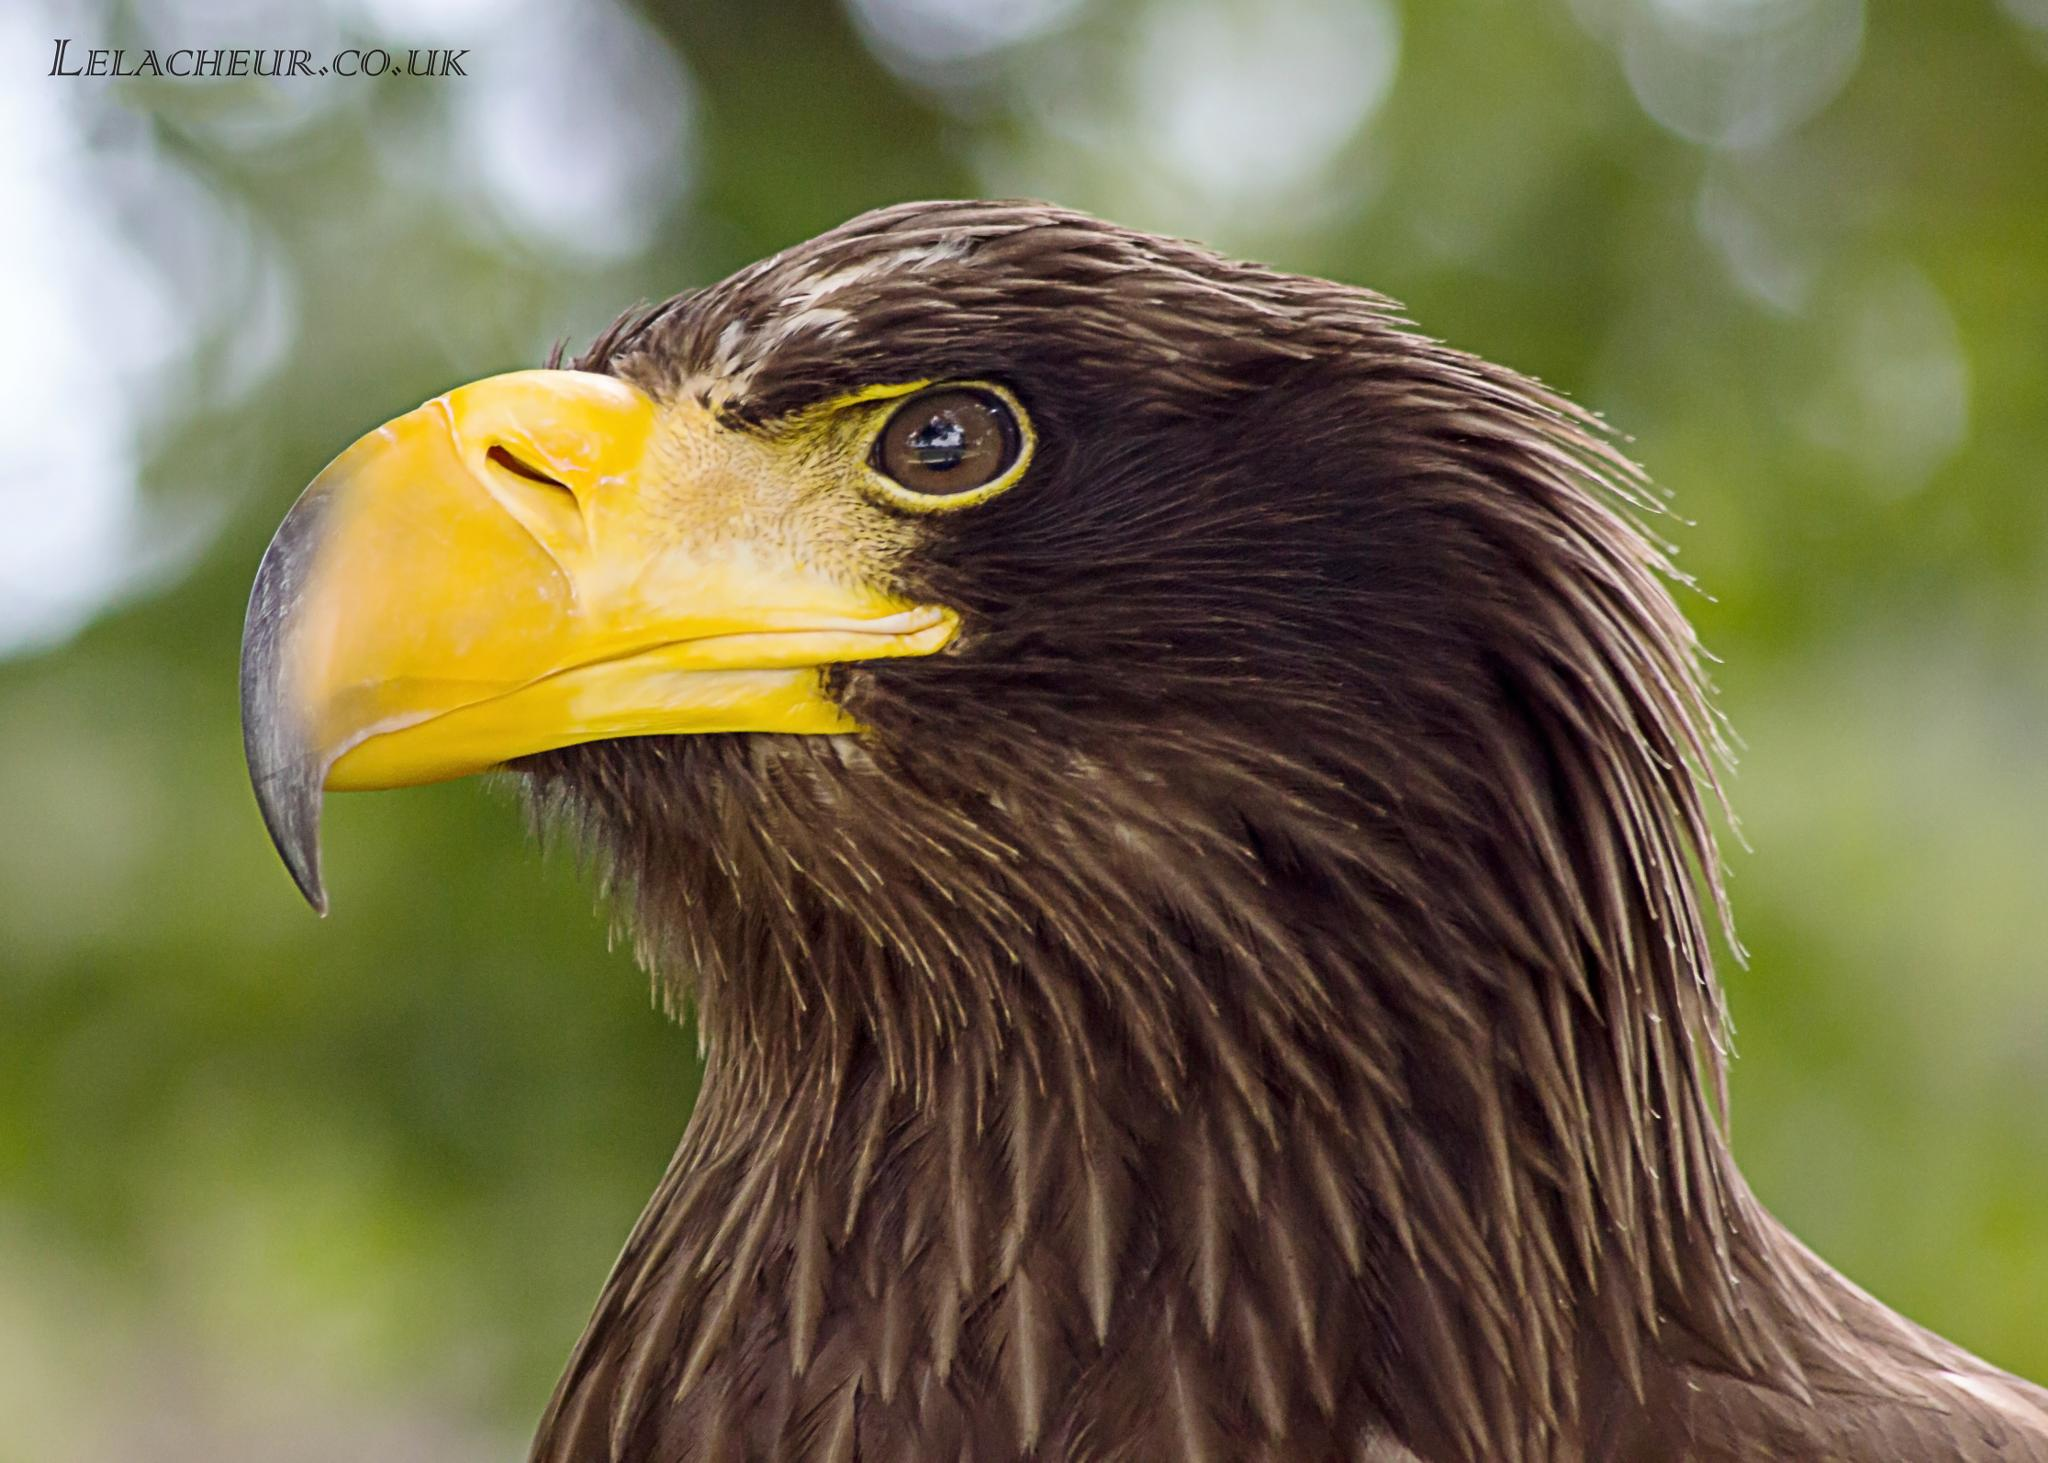 Sea Eagle by Jon Lelacheur Photography